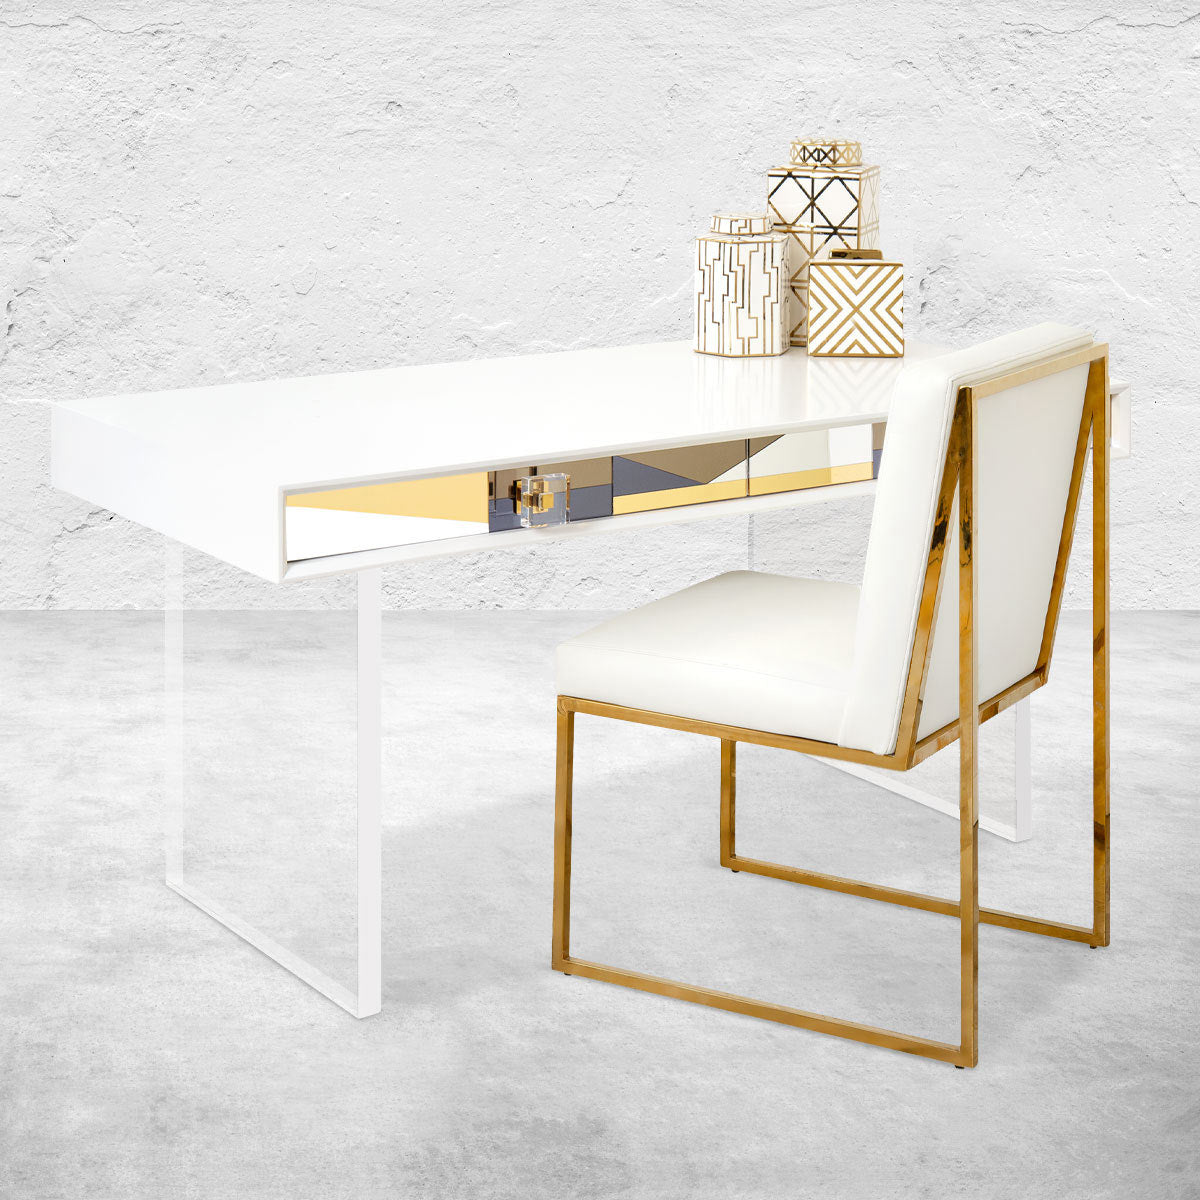 Studio 54 Mirrored Desk